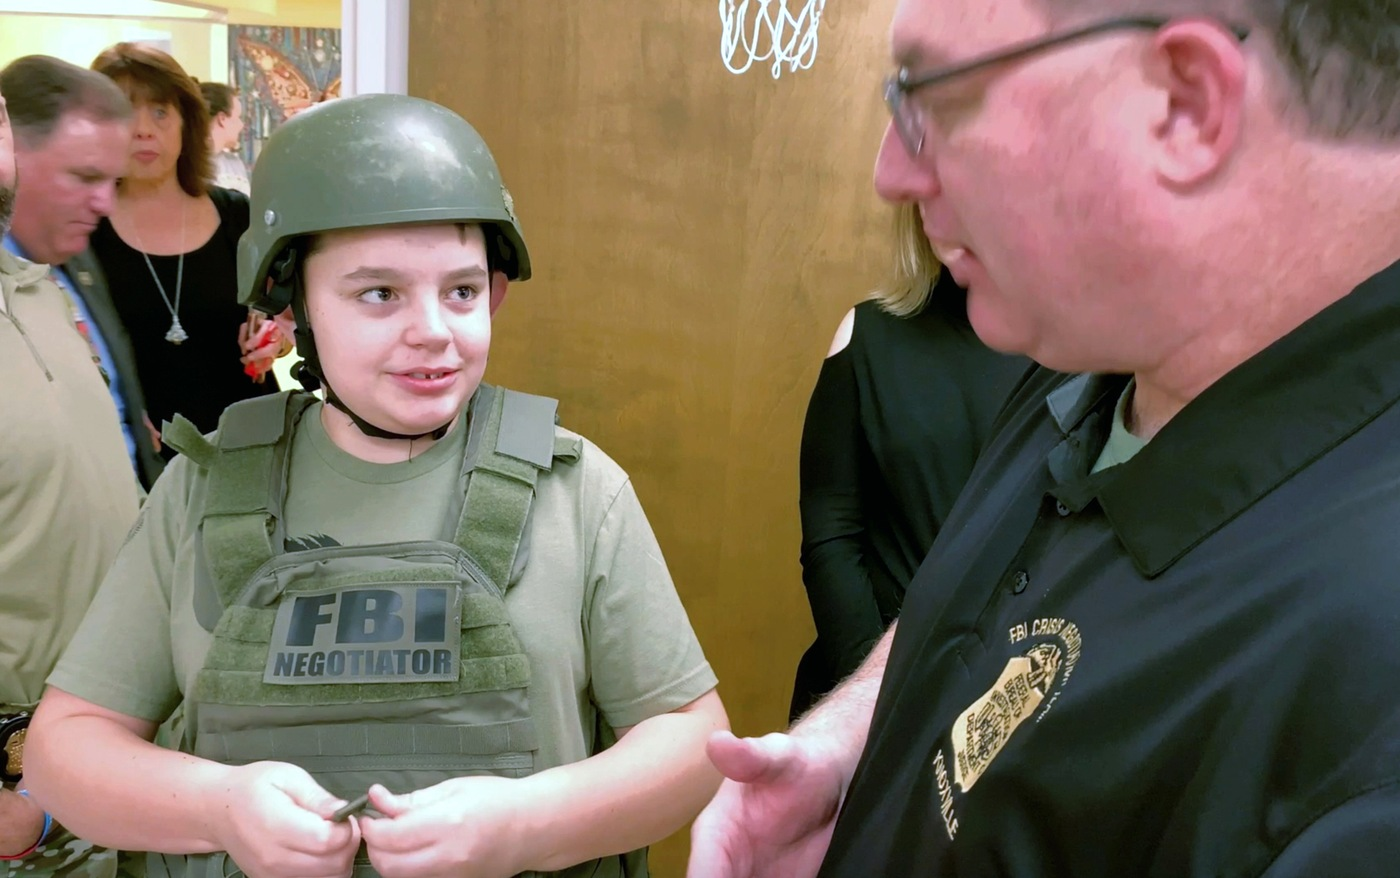 A patient at East Tennessee Children's Hospital wears FBI gear while talking with an FBI crisis negotiator during a visit by the Knoxville Field Office and the FBI Knoxville Citizens Academy Alumni Association on December 6, 2019.